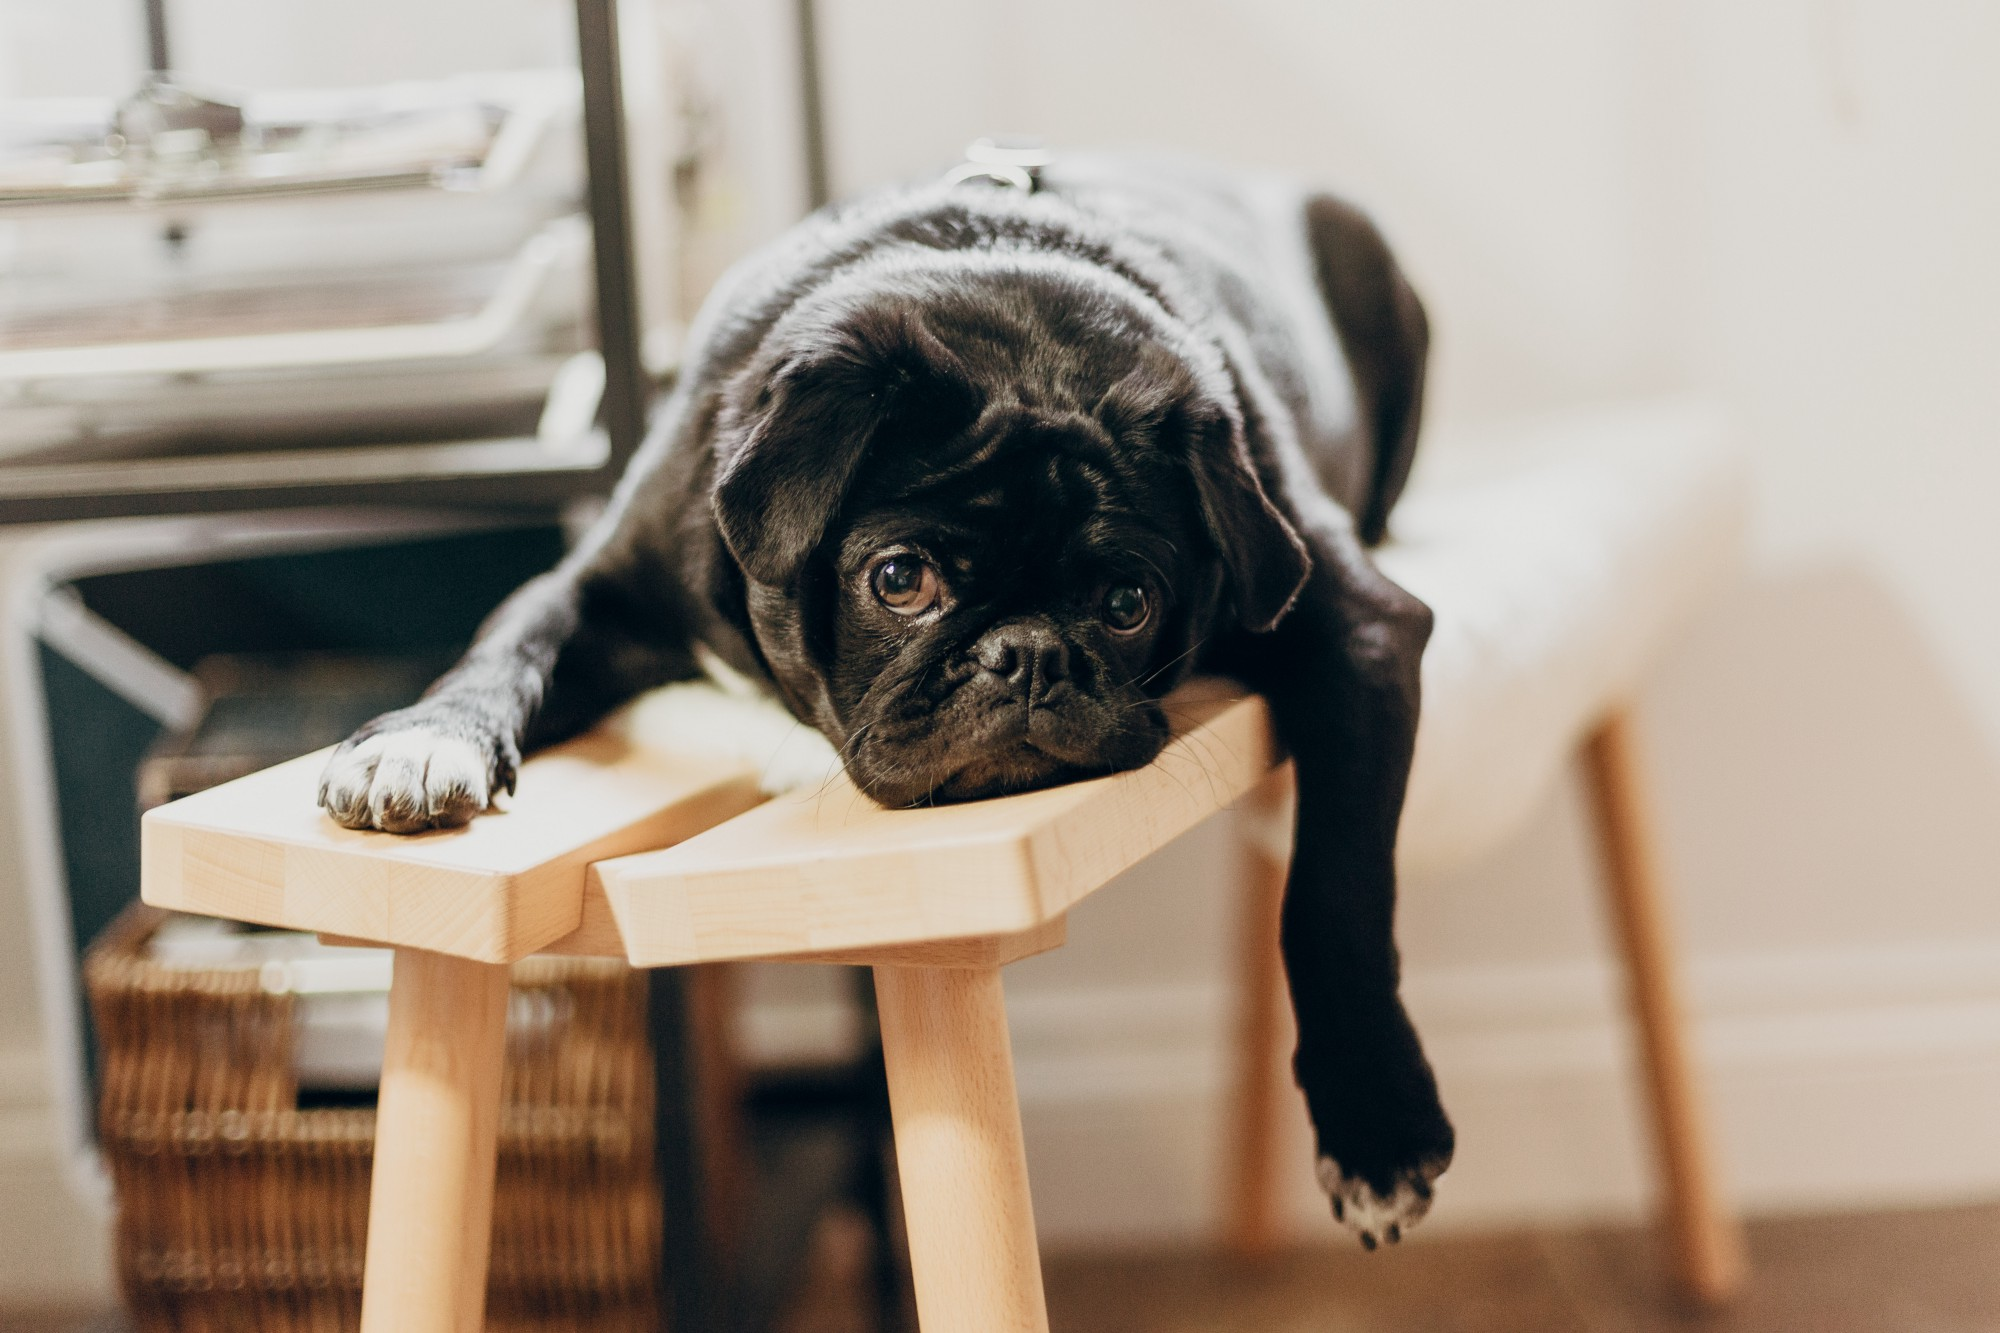 A black dog sitting on a light wooden bench